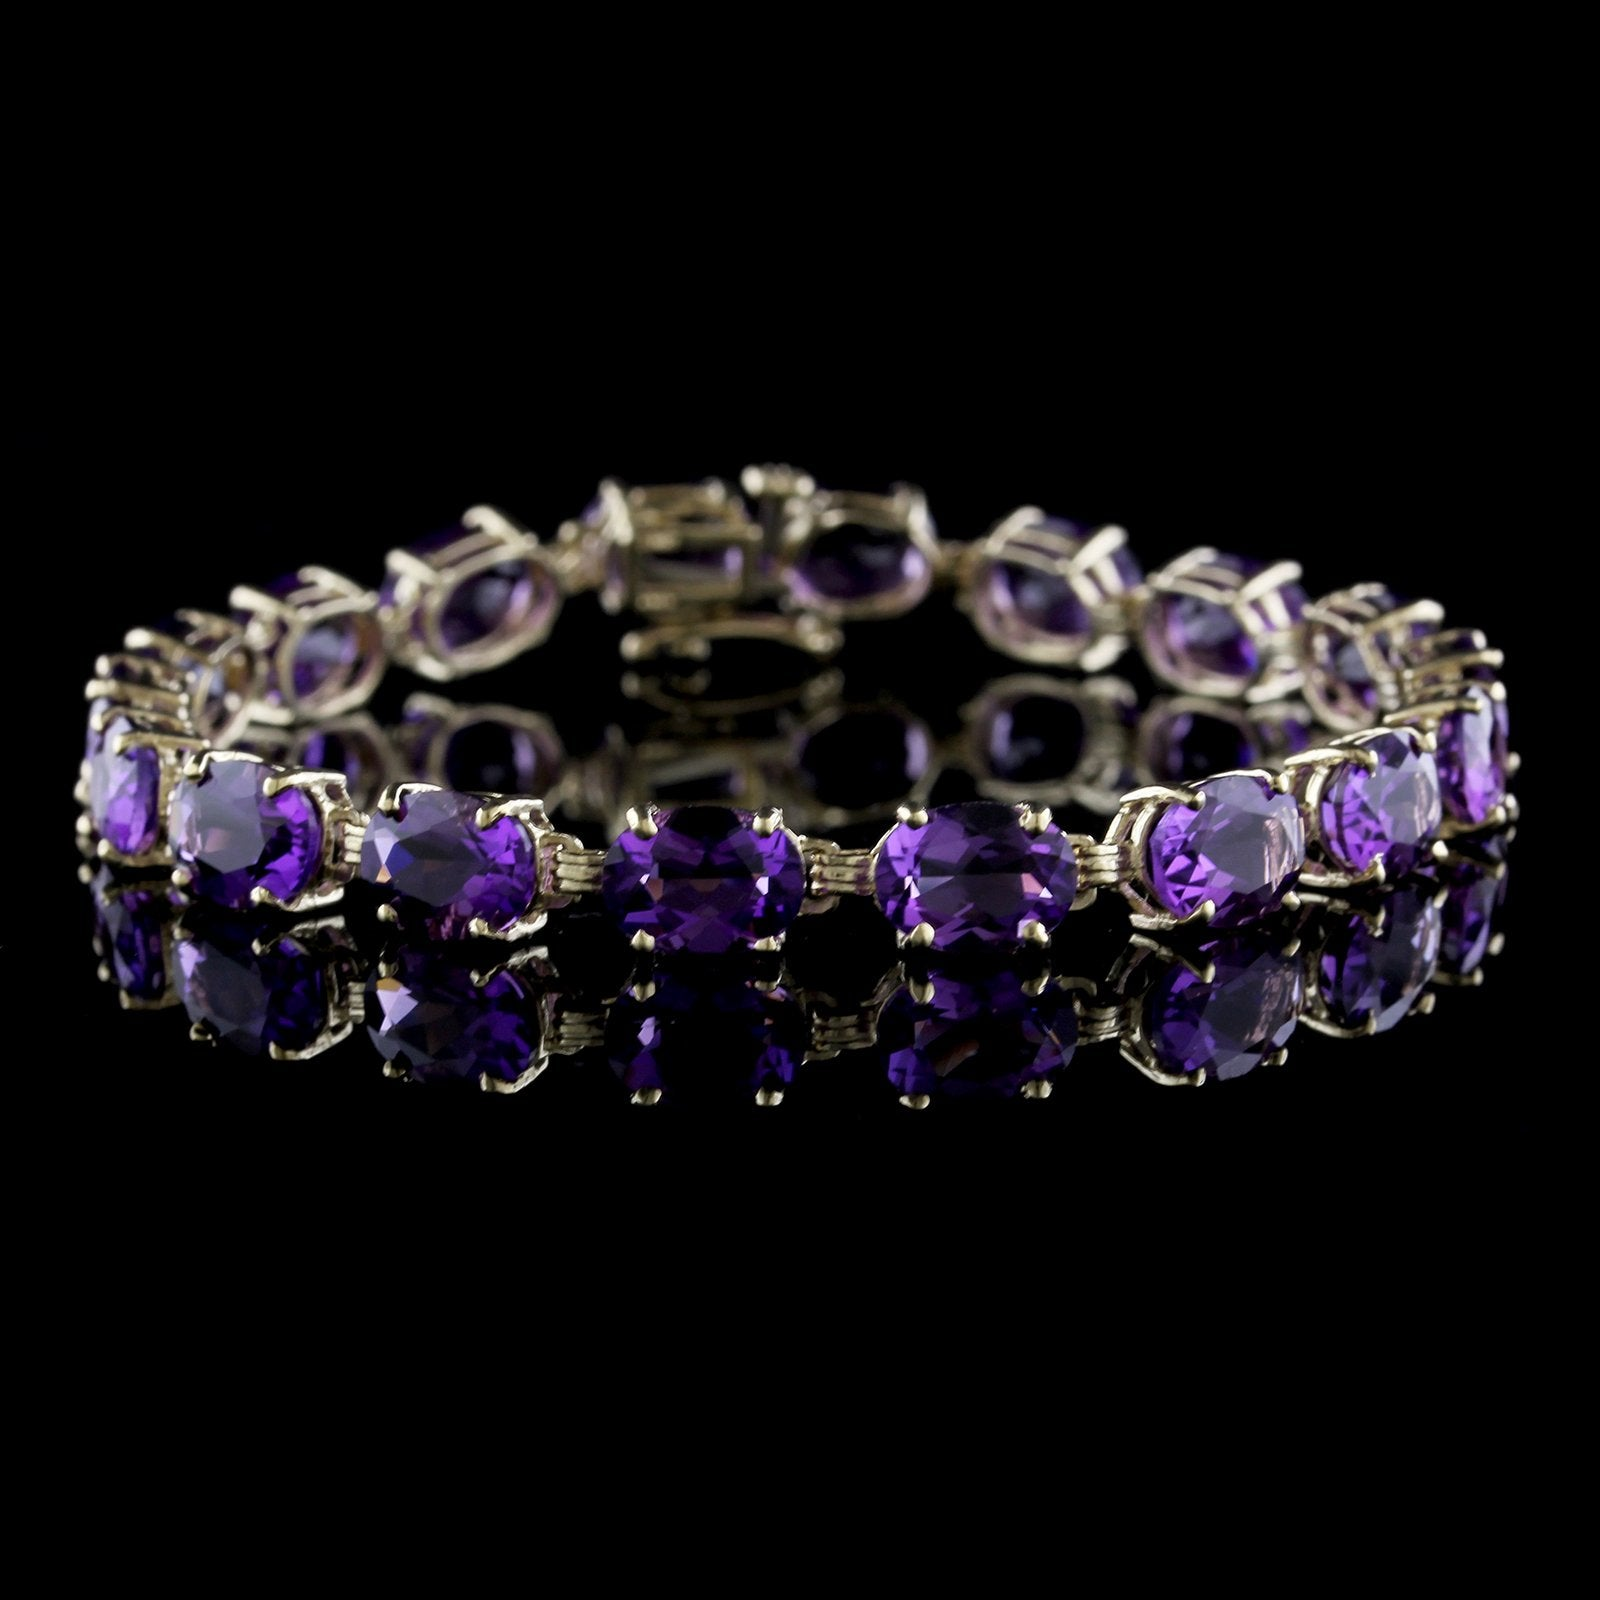 14K Yellow Gold Estate Amethyst Bracelet